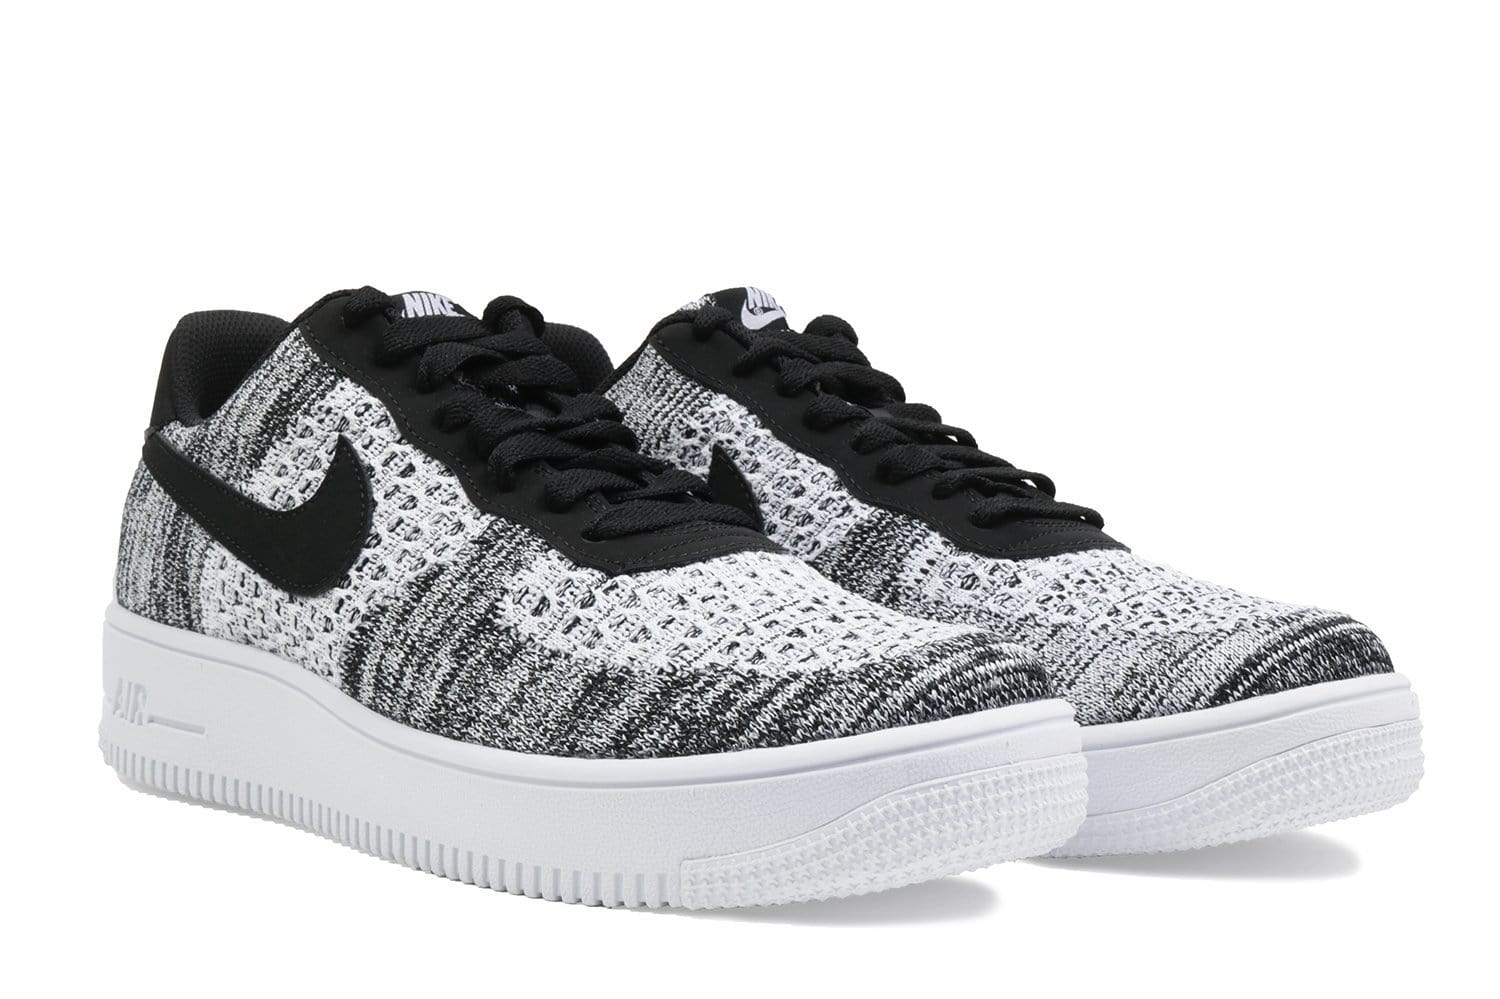 ffdaacab7 AIR FORCE 1 FLYKNIT 2.0 - AV3042-001 MENS FOOTWEAR NIKE